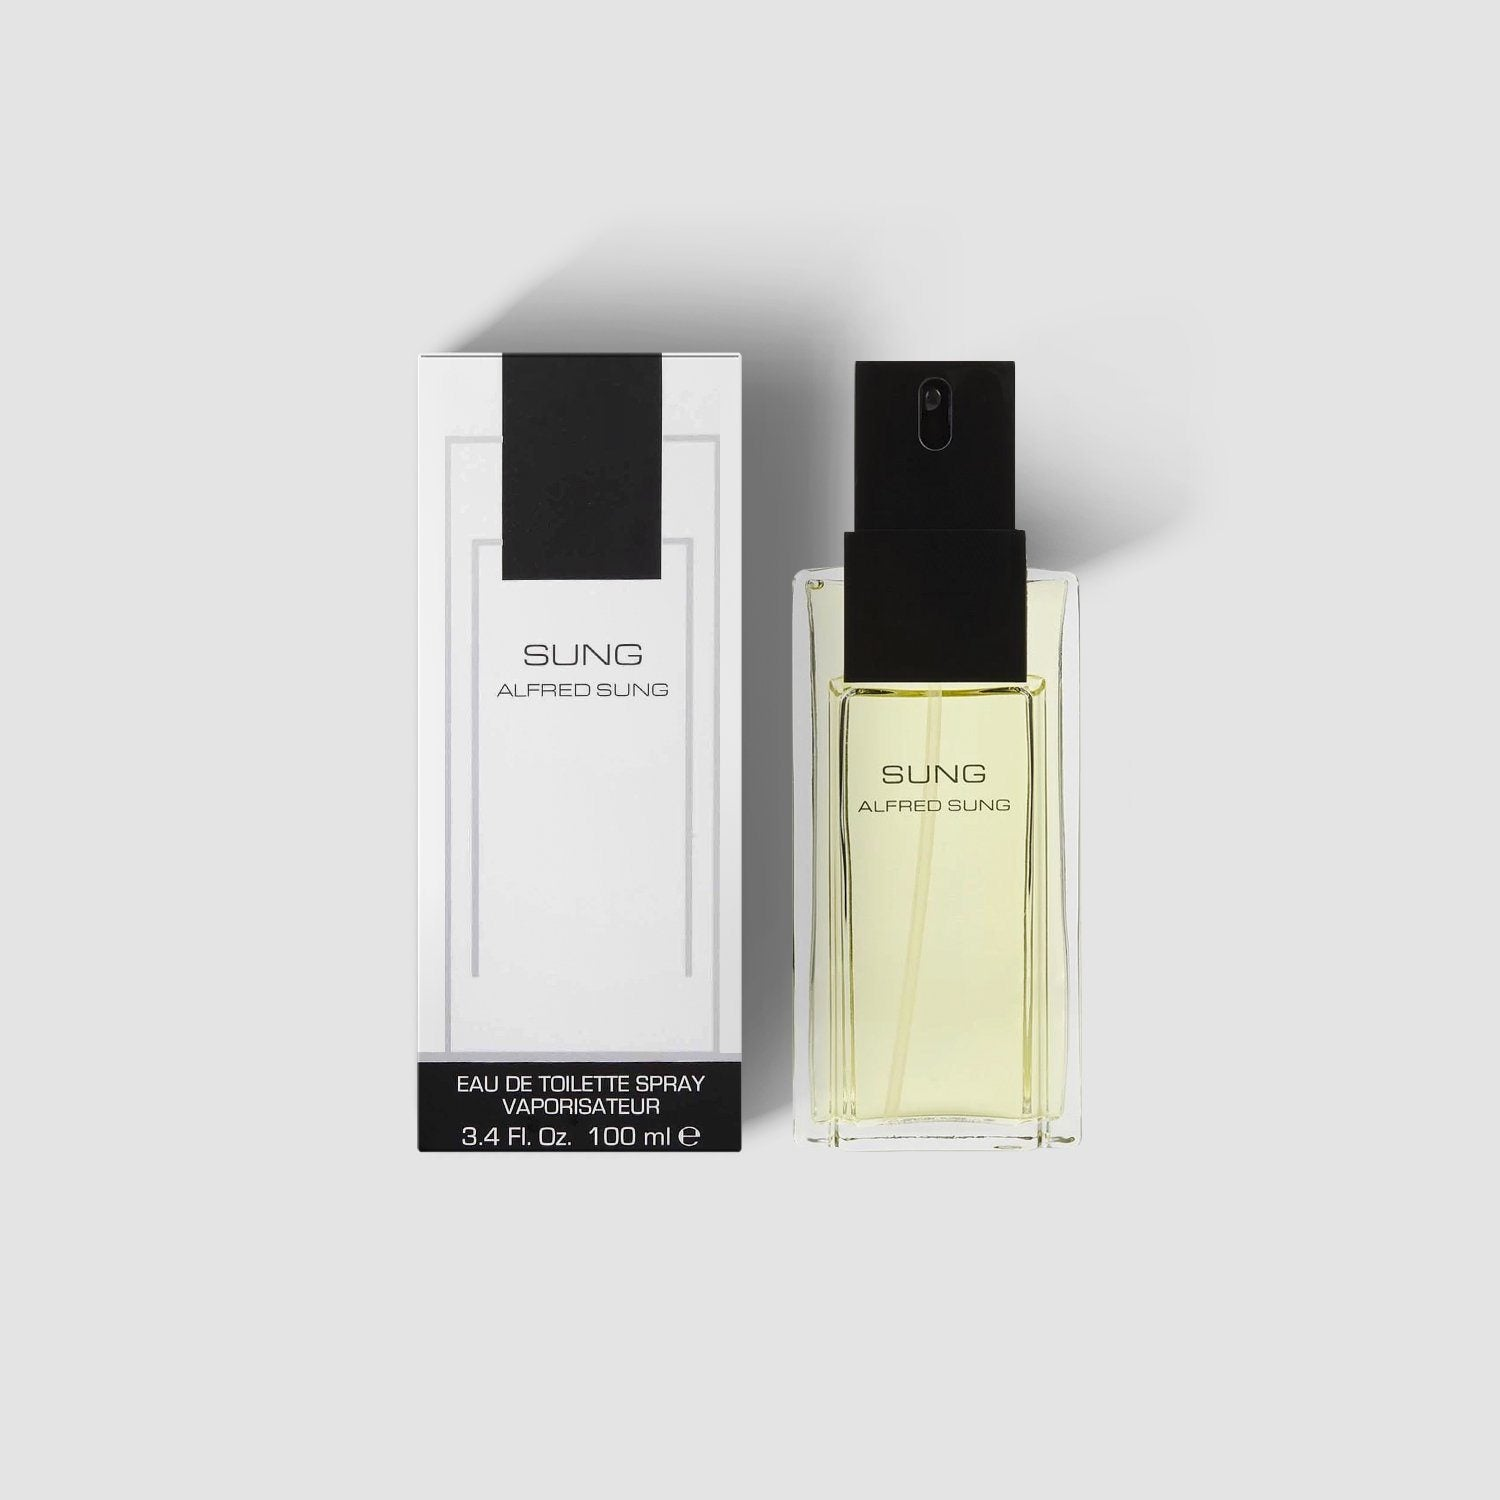 Sung Eau De Toilette Spray for Women - AromaFi